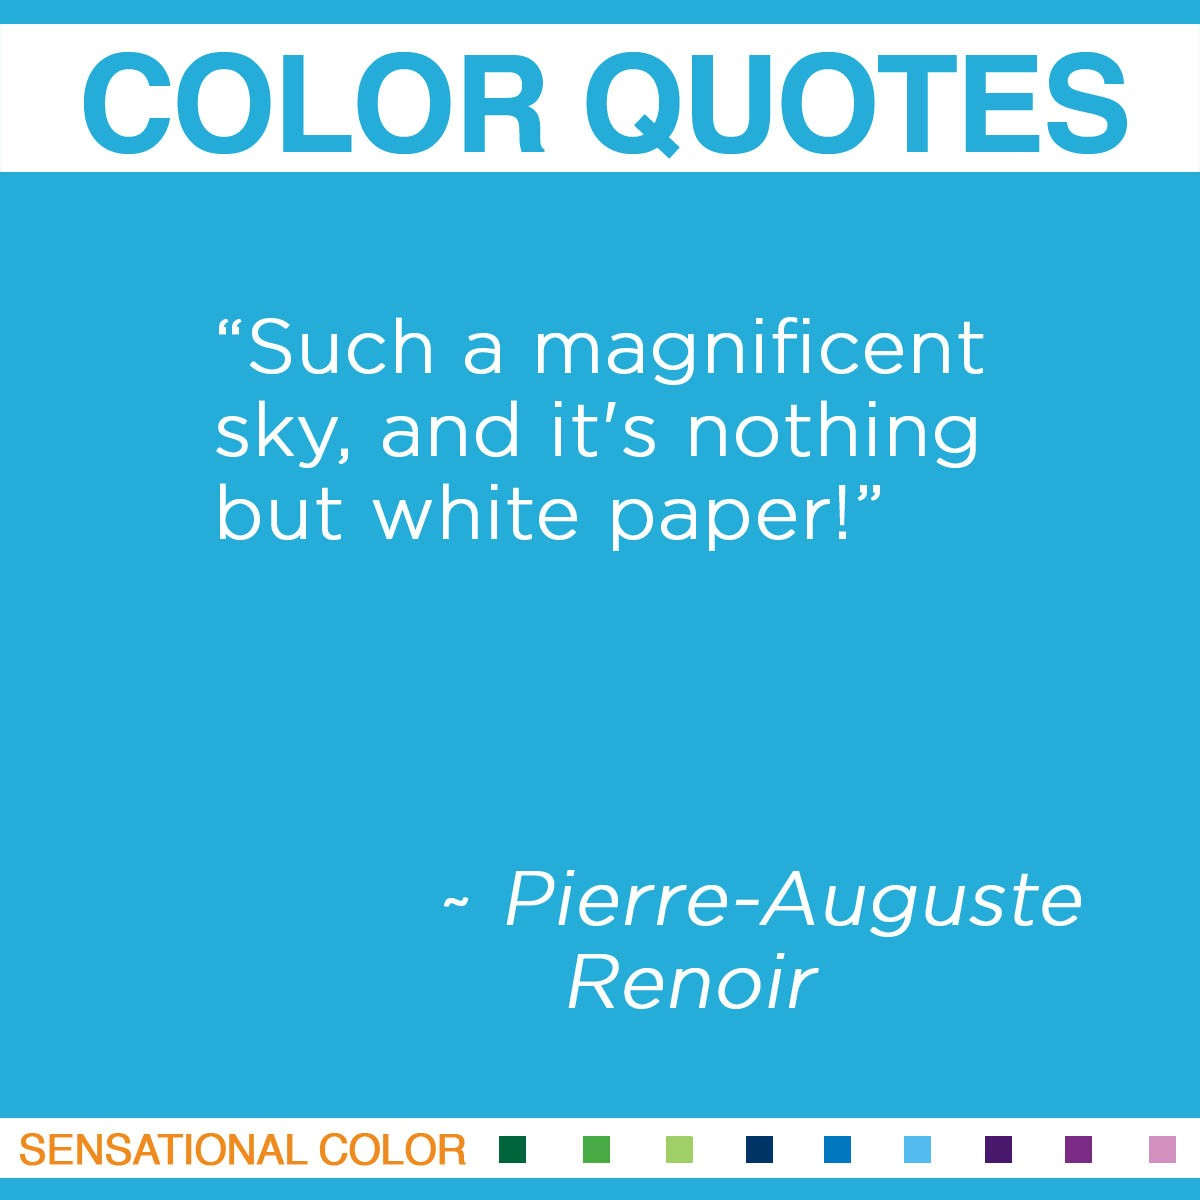 """Such a magnificent sky, and it's nothing but white paper!"" - Pierre-Auguste Renoir"